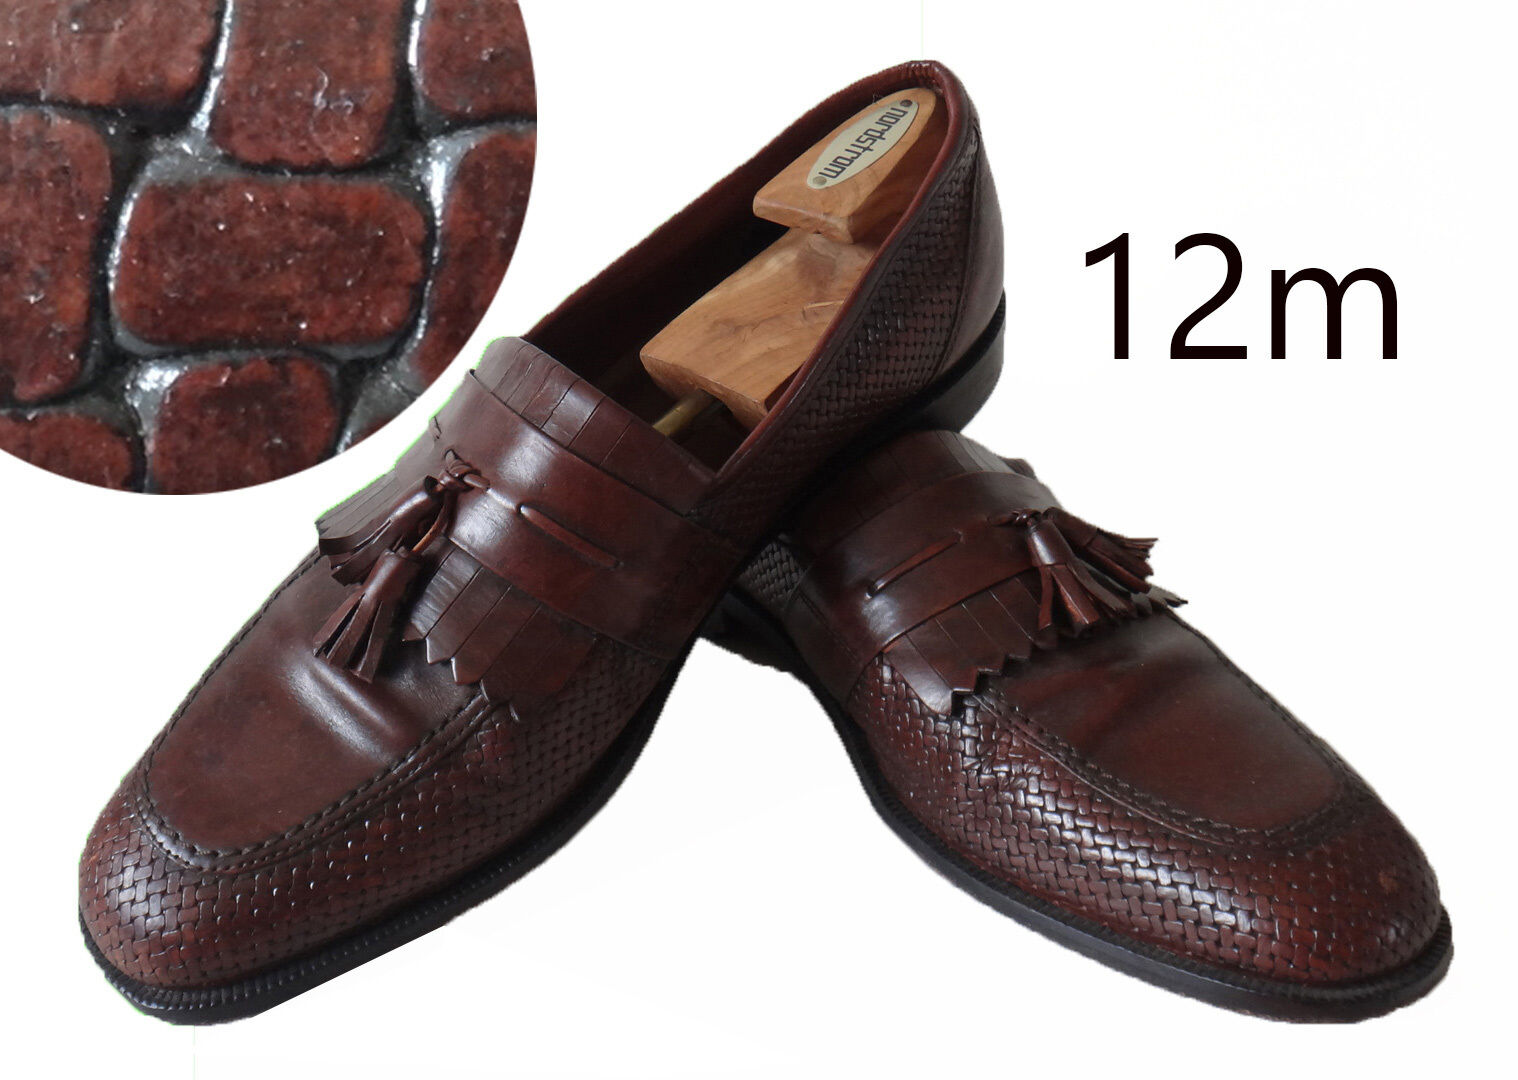 Bostonian basket weave woven tassel loafer fringe 12m brown leather SOLE